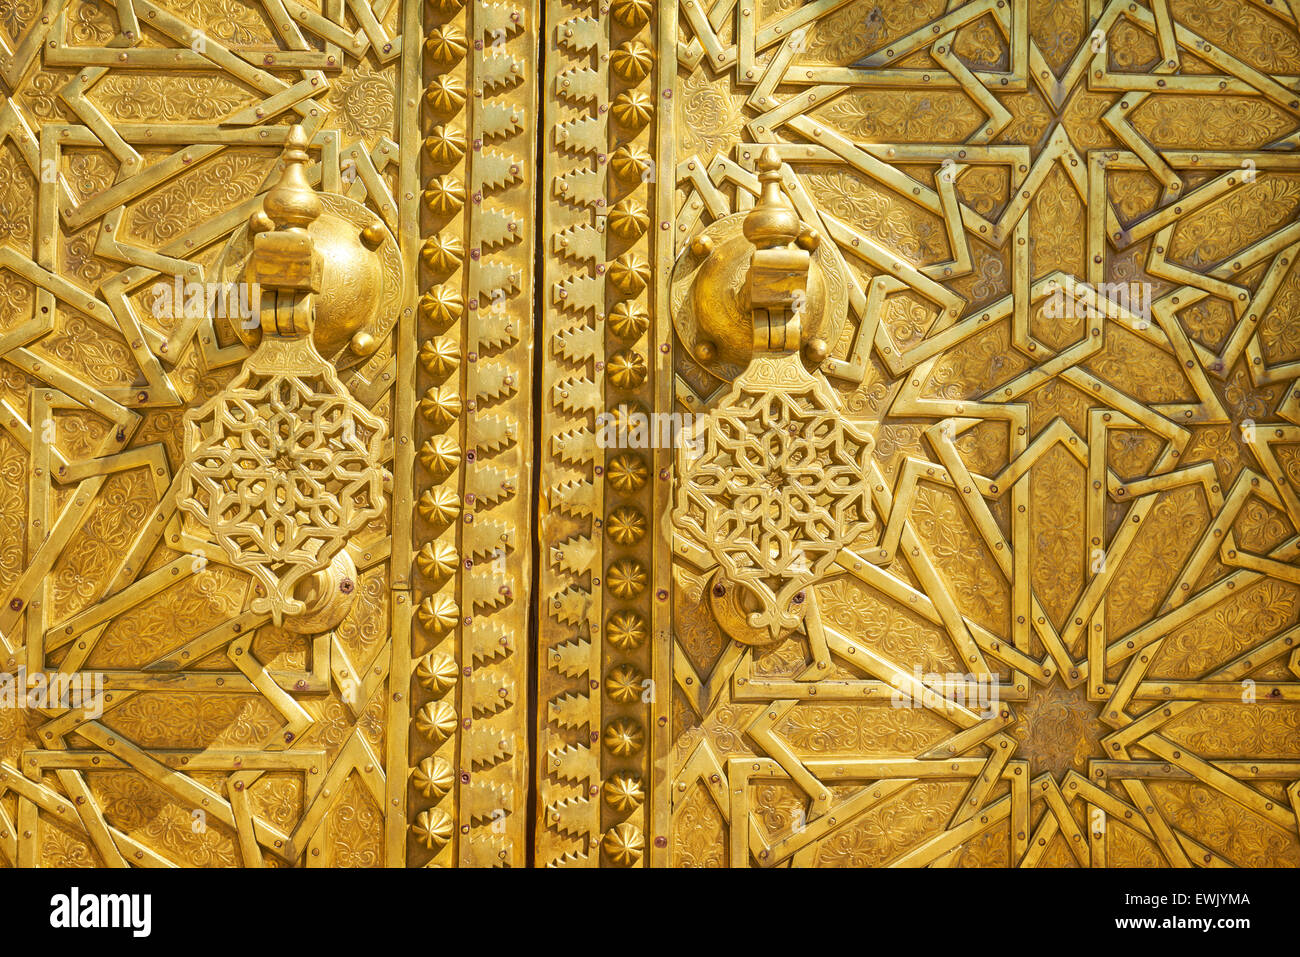 Door detail,The Royal Palace in Fez, Morocco, Africa - Stock Image